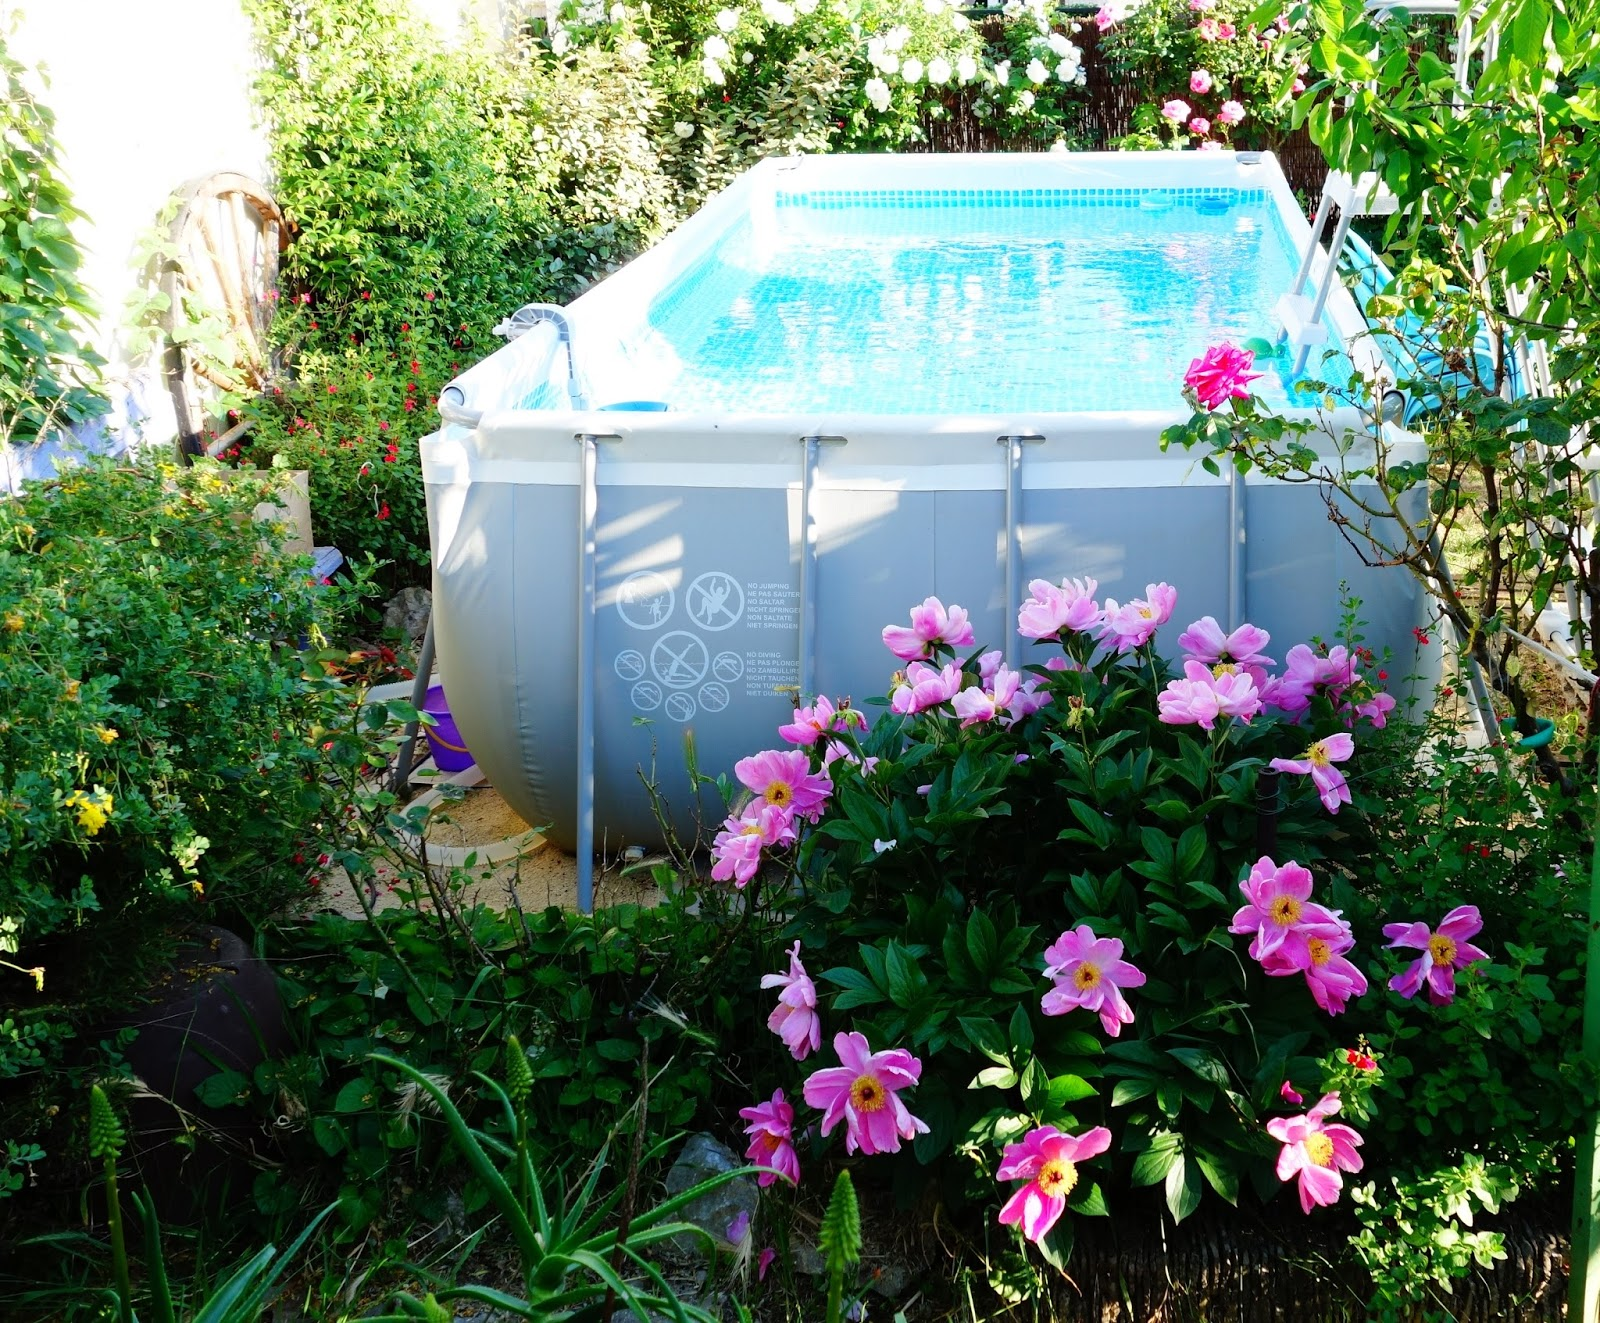 Comment installer et entretenir sa piscine hors sol for Installer une piscine